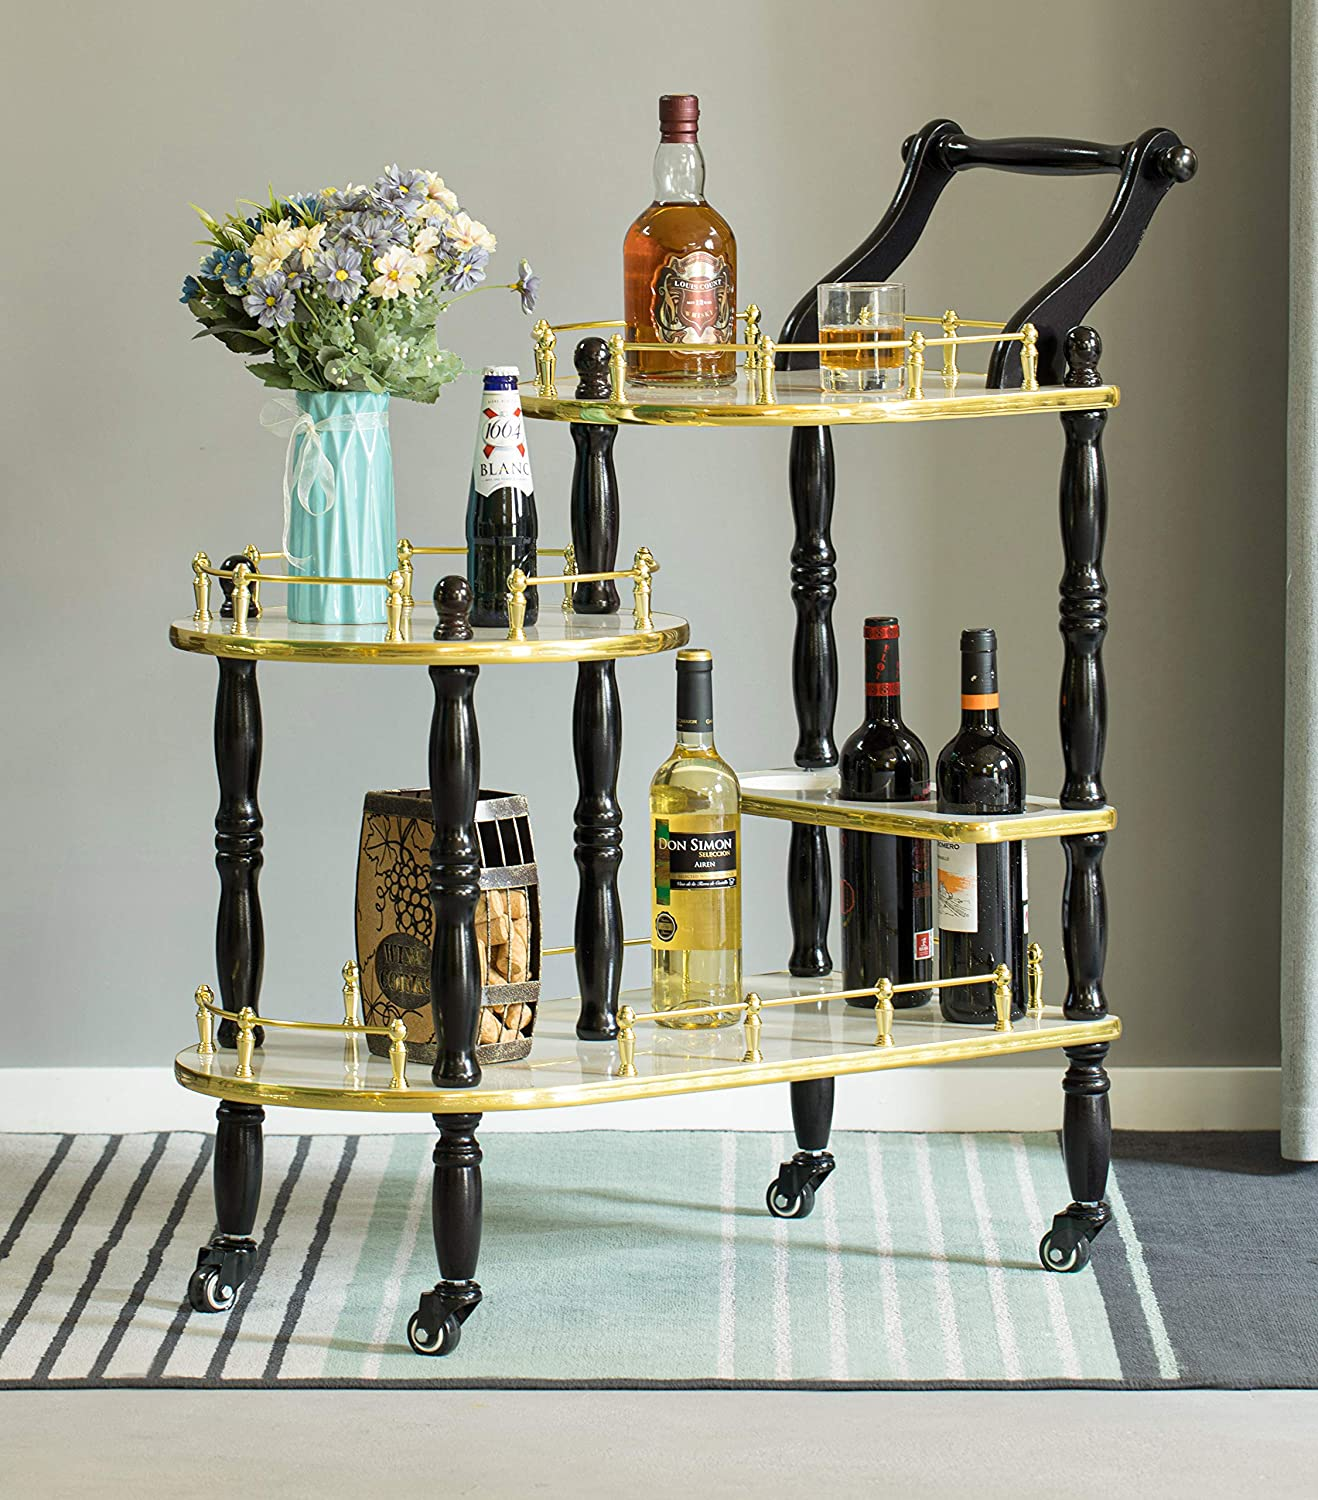 Get Your Bar Trolley Ready For A Party!